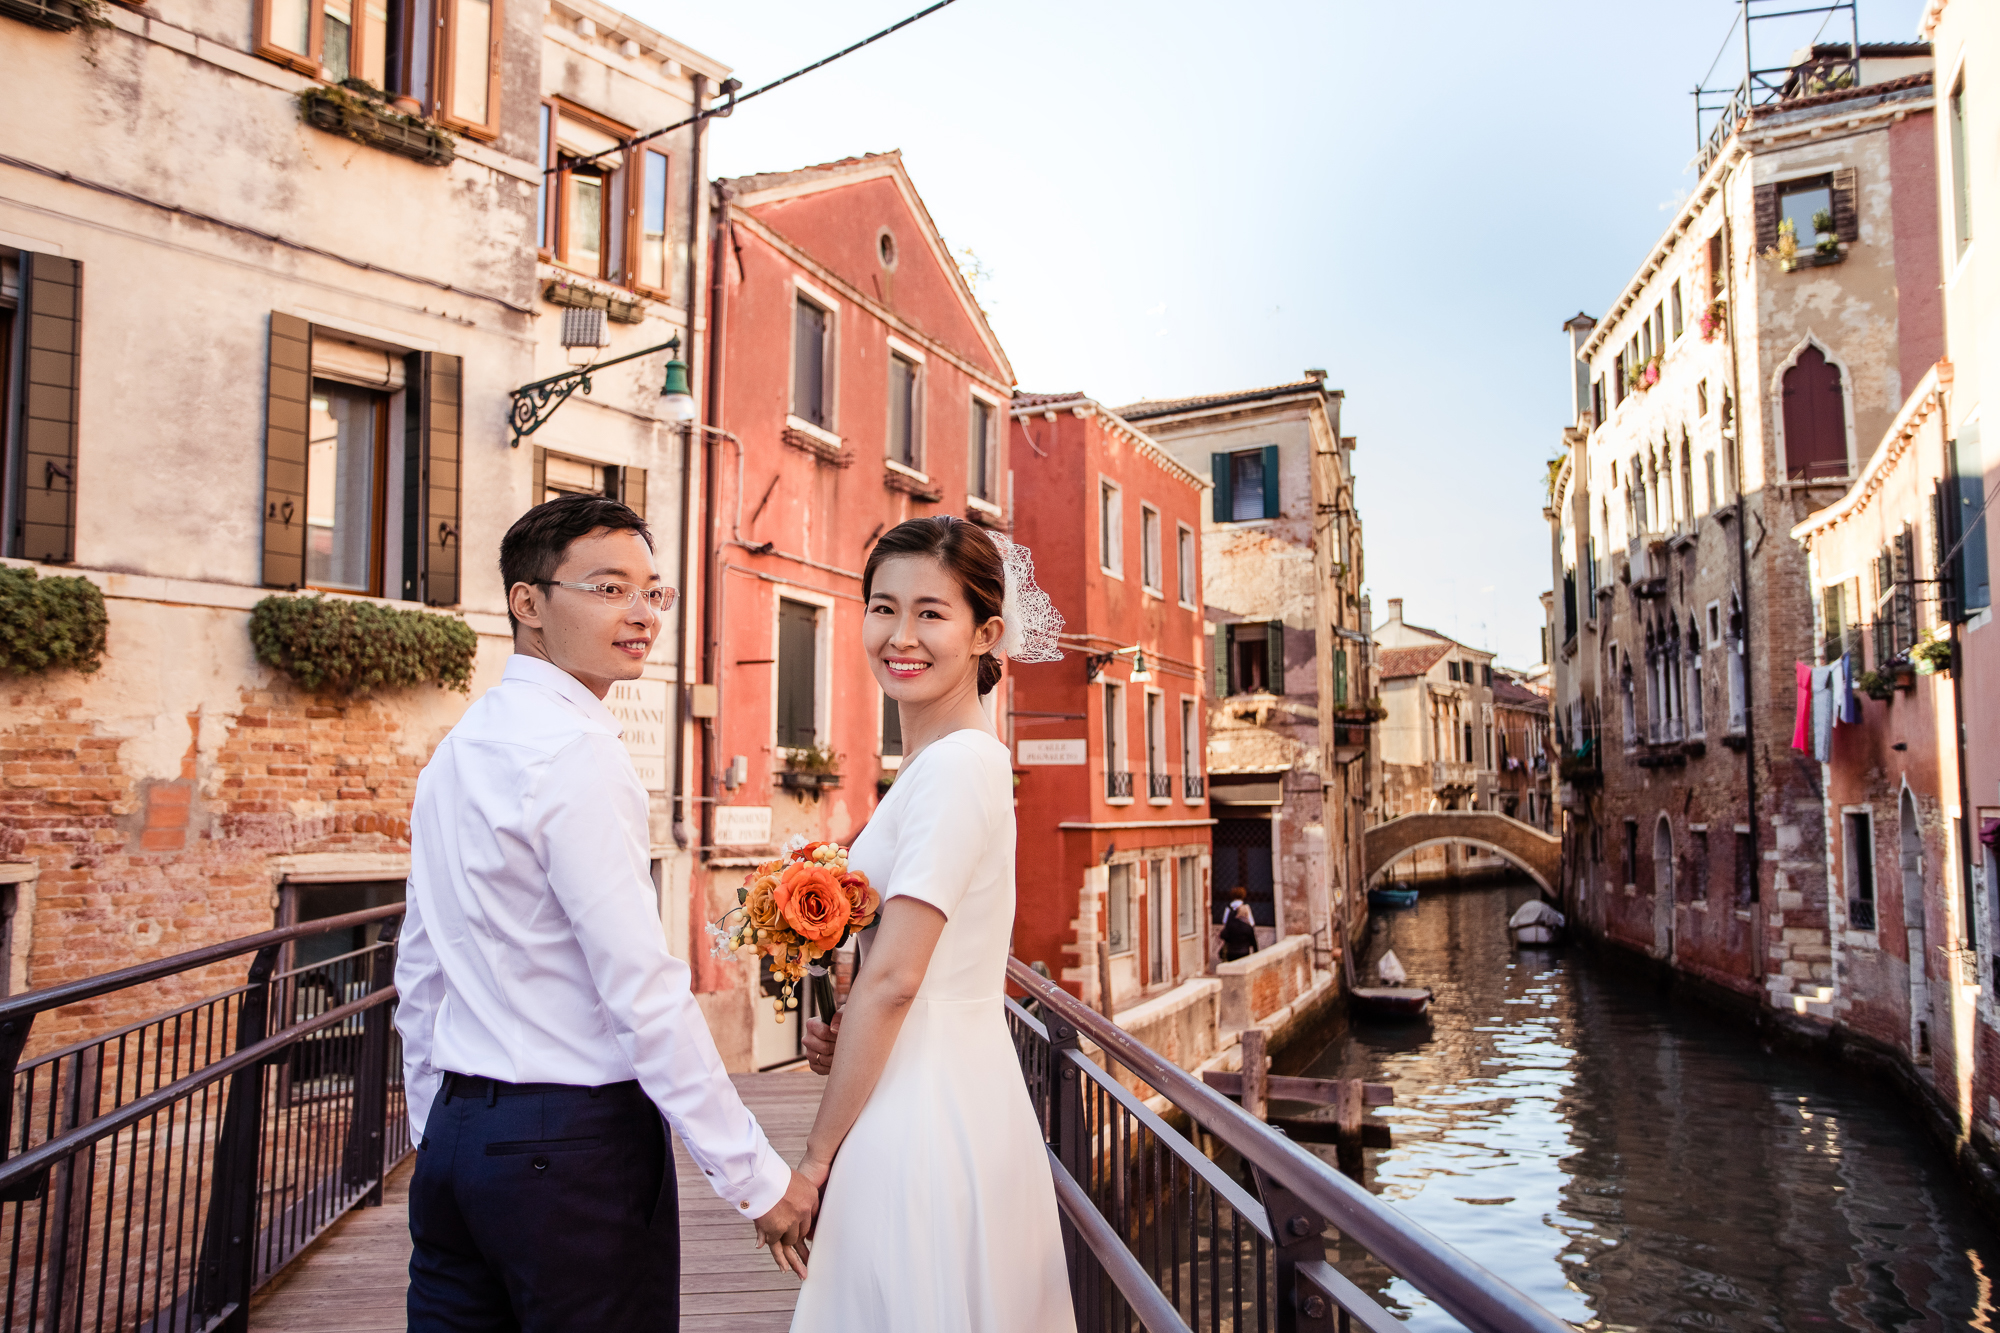 Wedding Day Mei and Qingyi in Venice, Italy